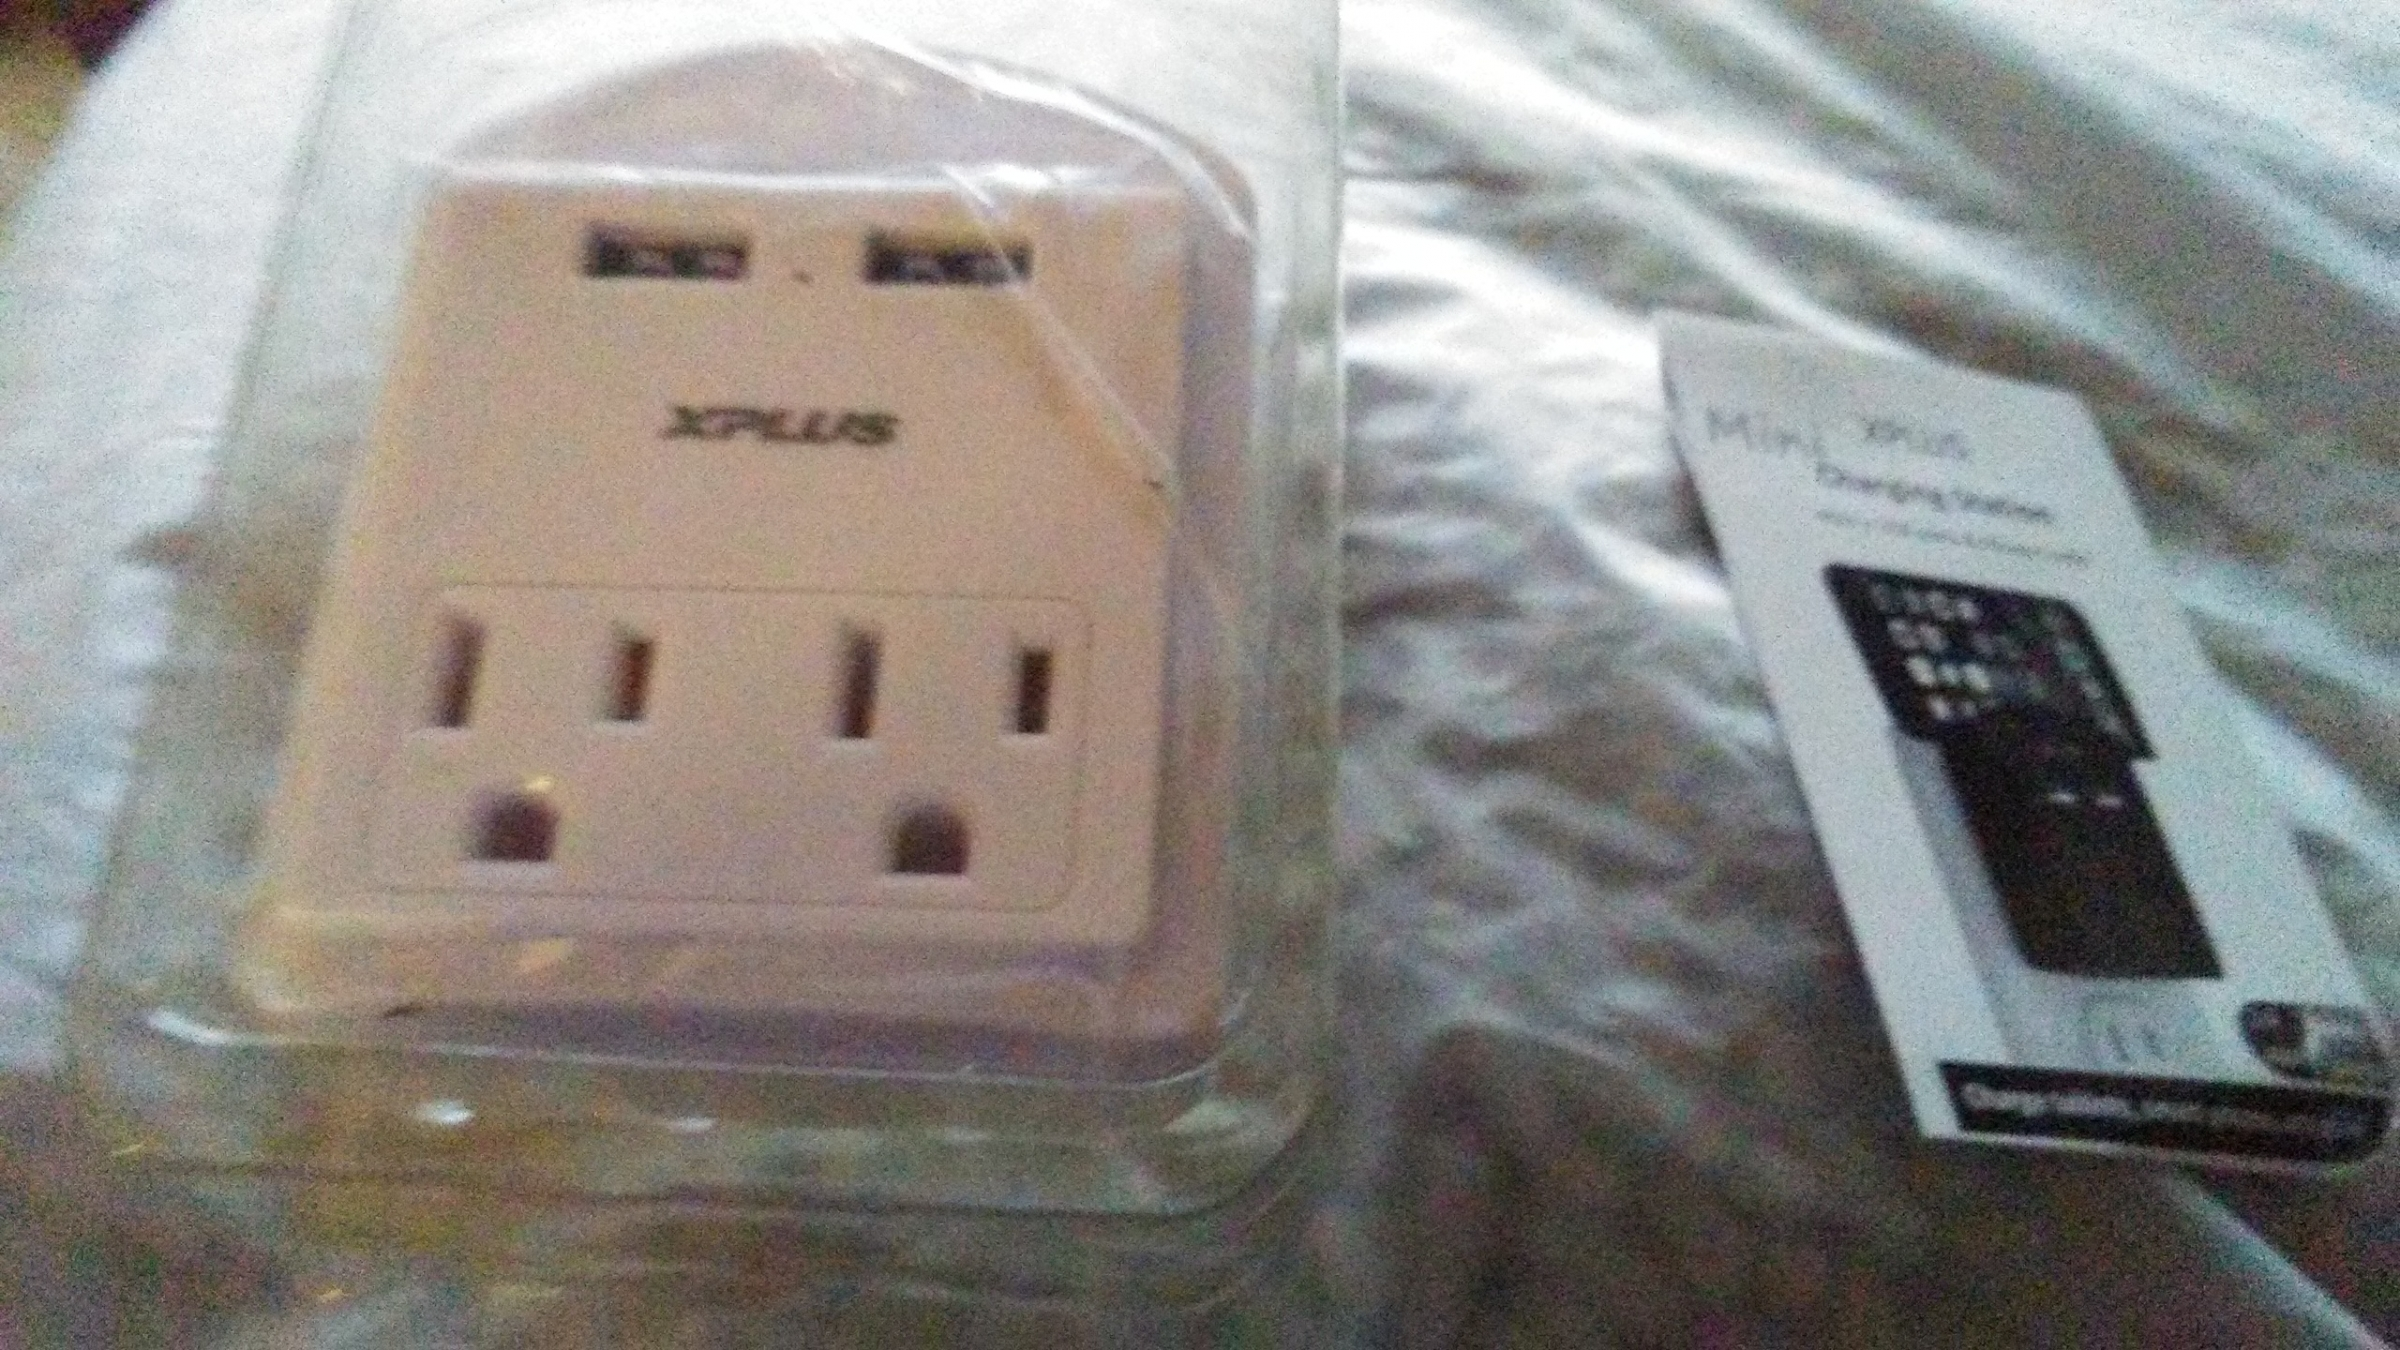 I bought this USB Wall Outlet as a way to add functionality to my standard wall outlet.